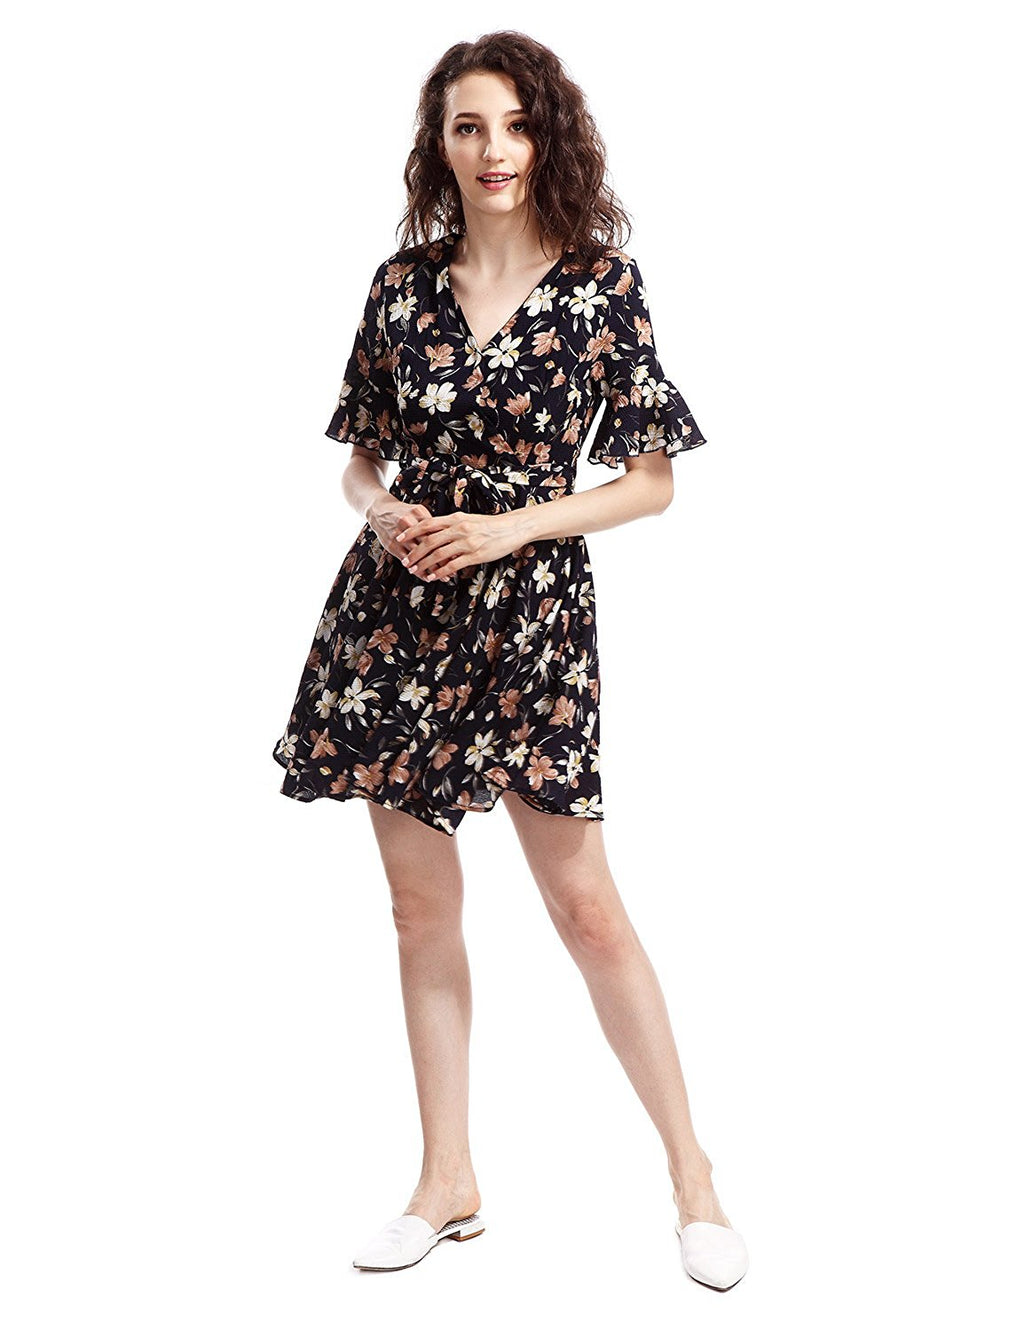 Floral Chiffon Flower Print Flare Sleeve Mini Dress with Belt